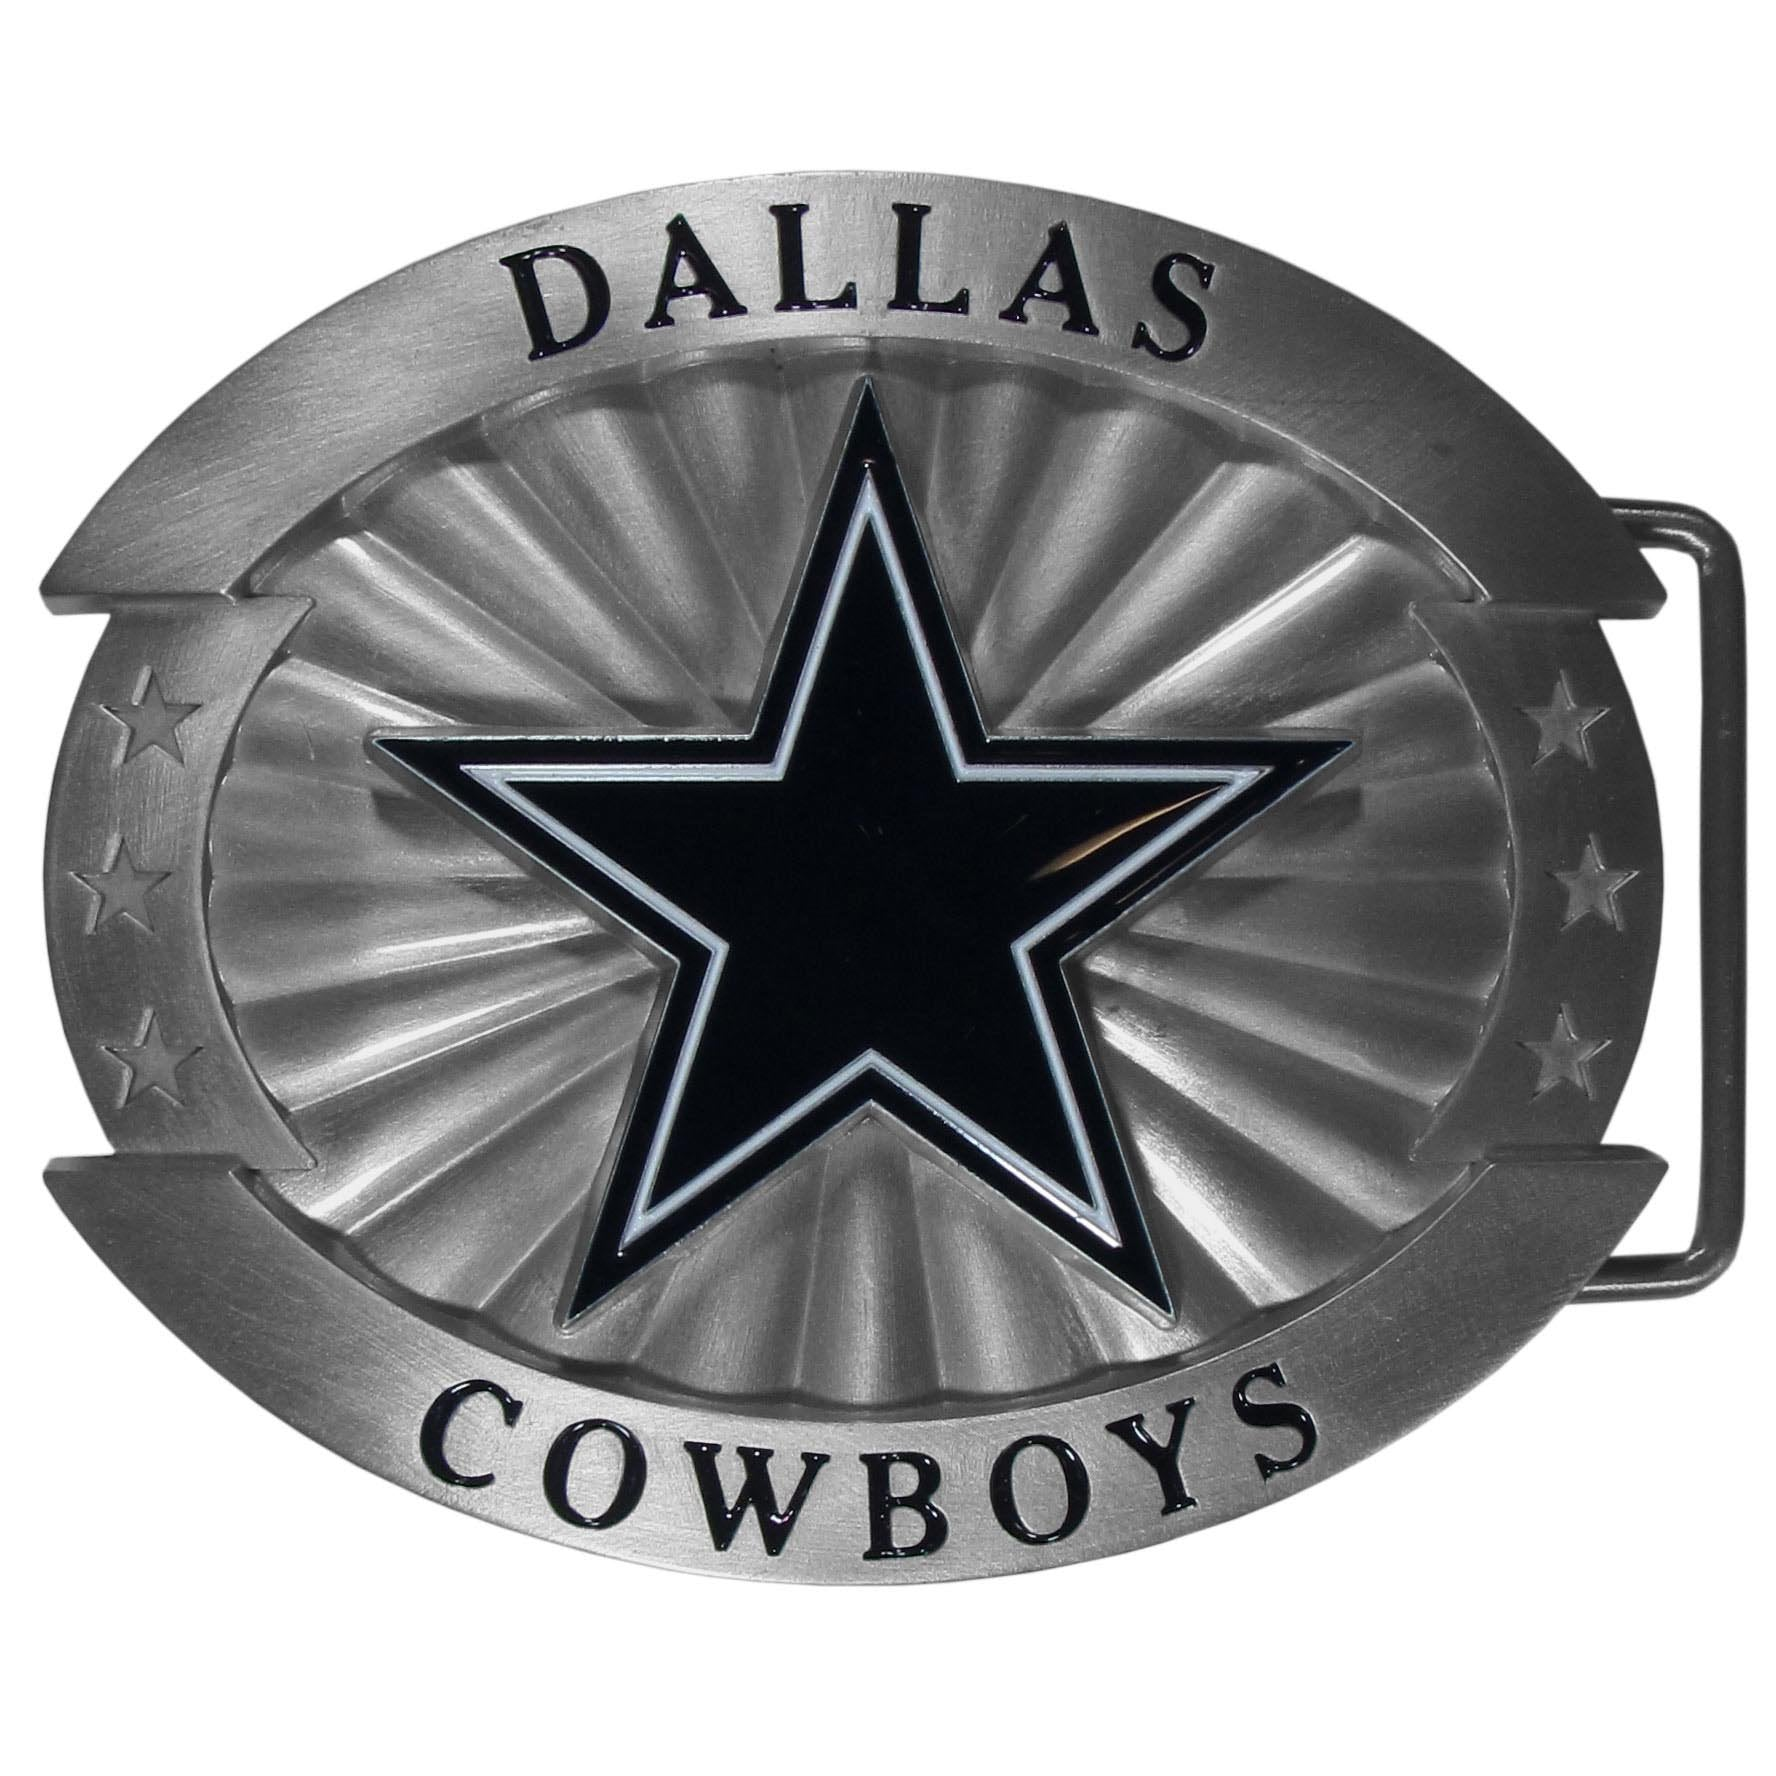 Dallas Cowboys NFL Football Officially Licensed Belt Buckle